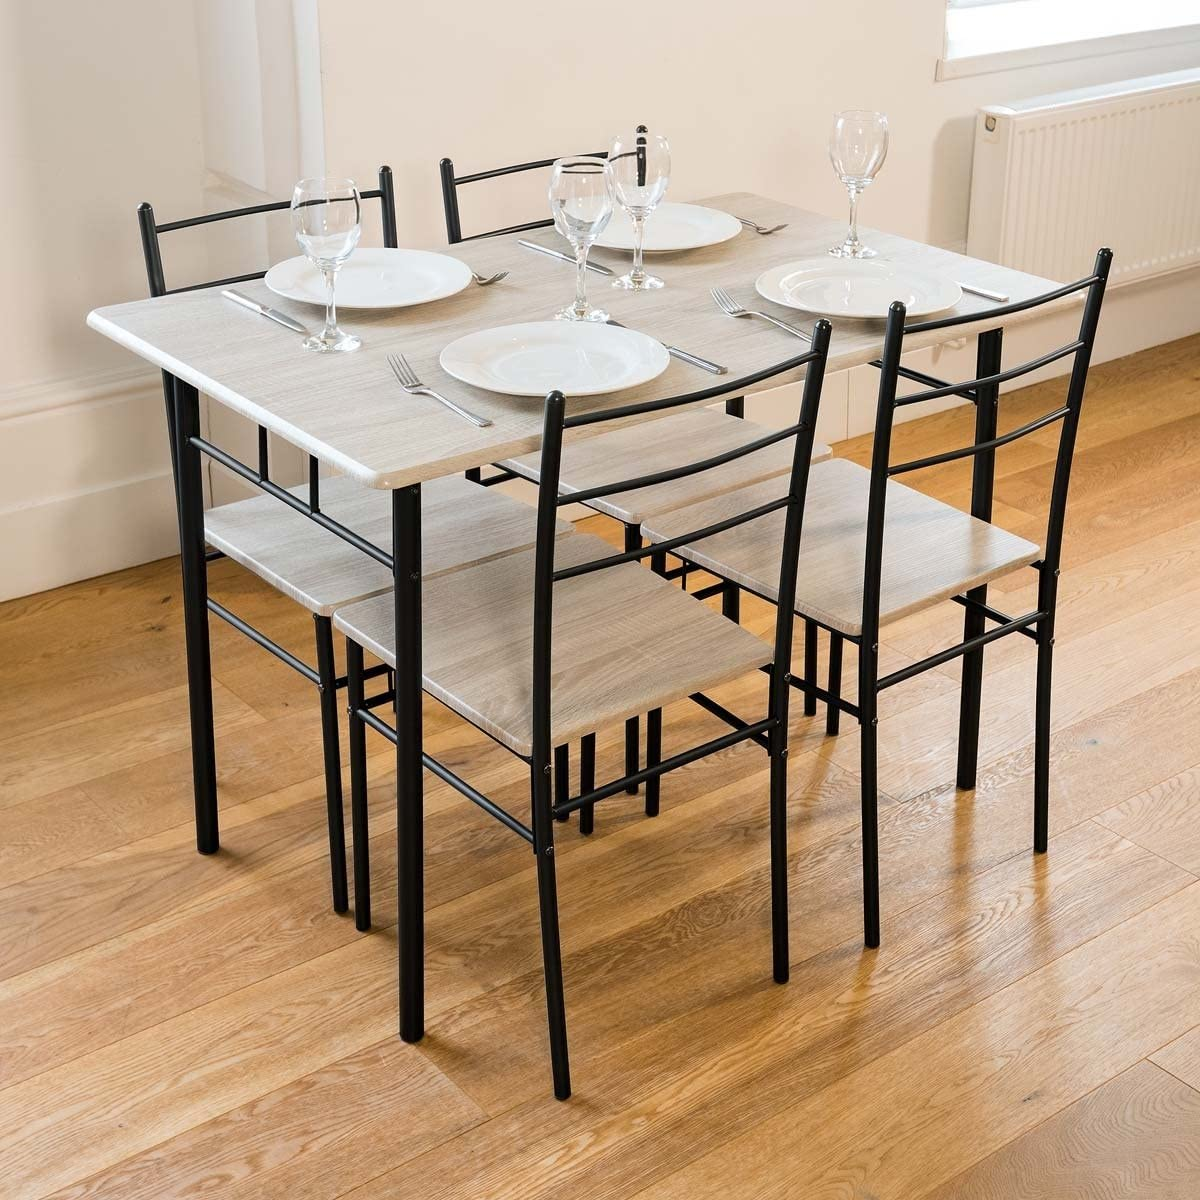 dining table sets shop amazon uk rh amazon co uk kitchen dining table and chairs small Animathed Dinner Table and Chairs